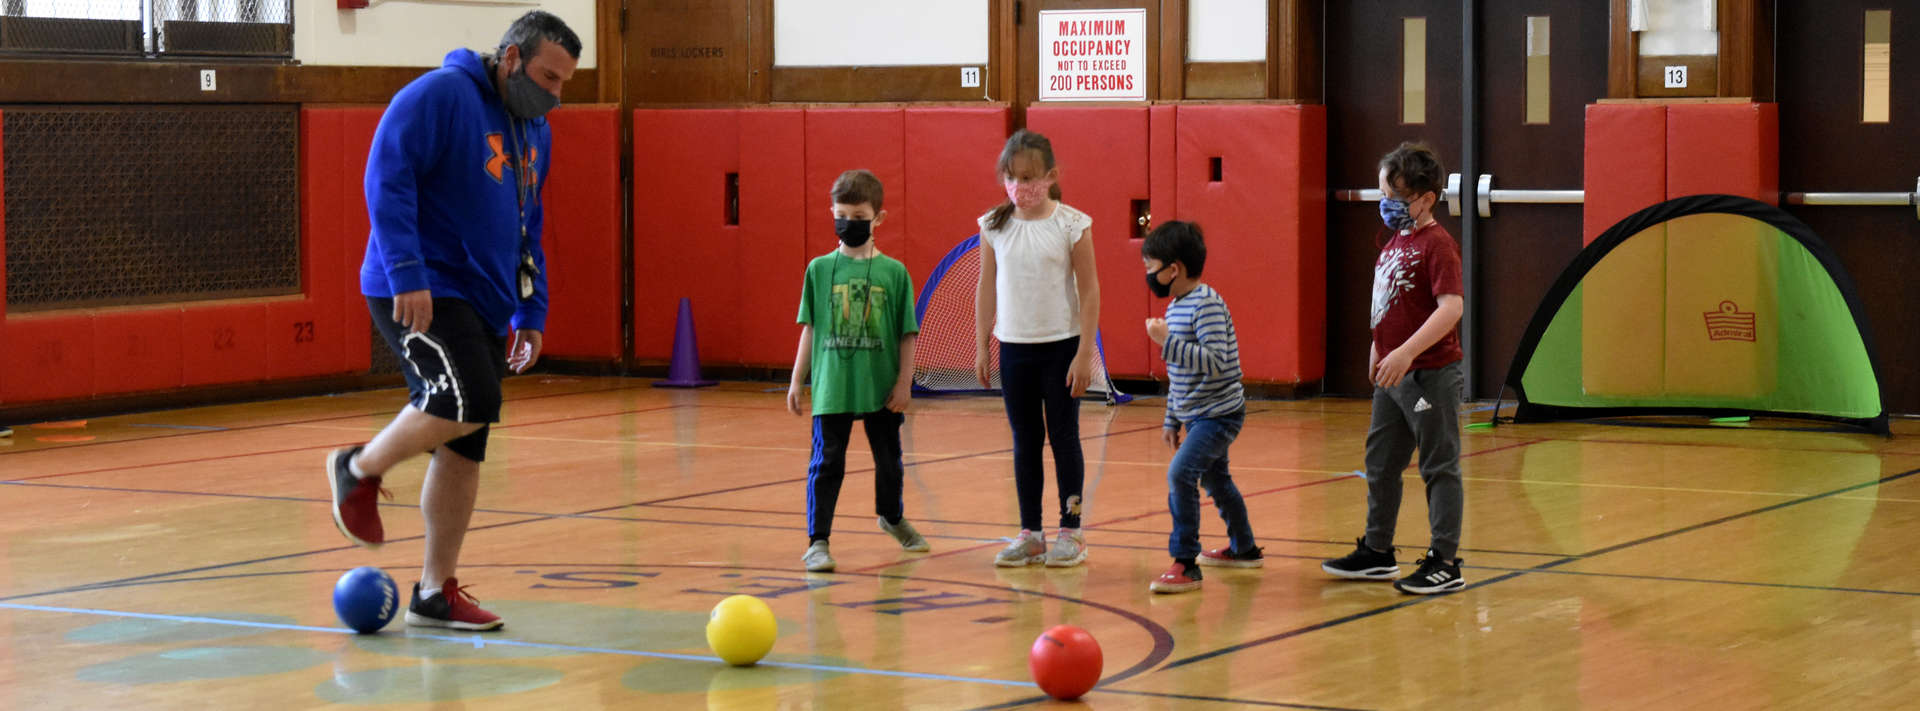 Gym teacher and 4 students playing with colorful balls